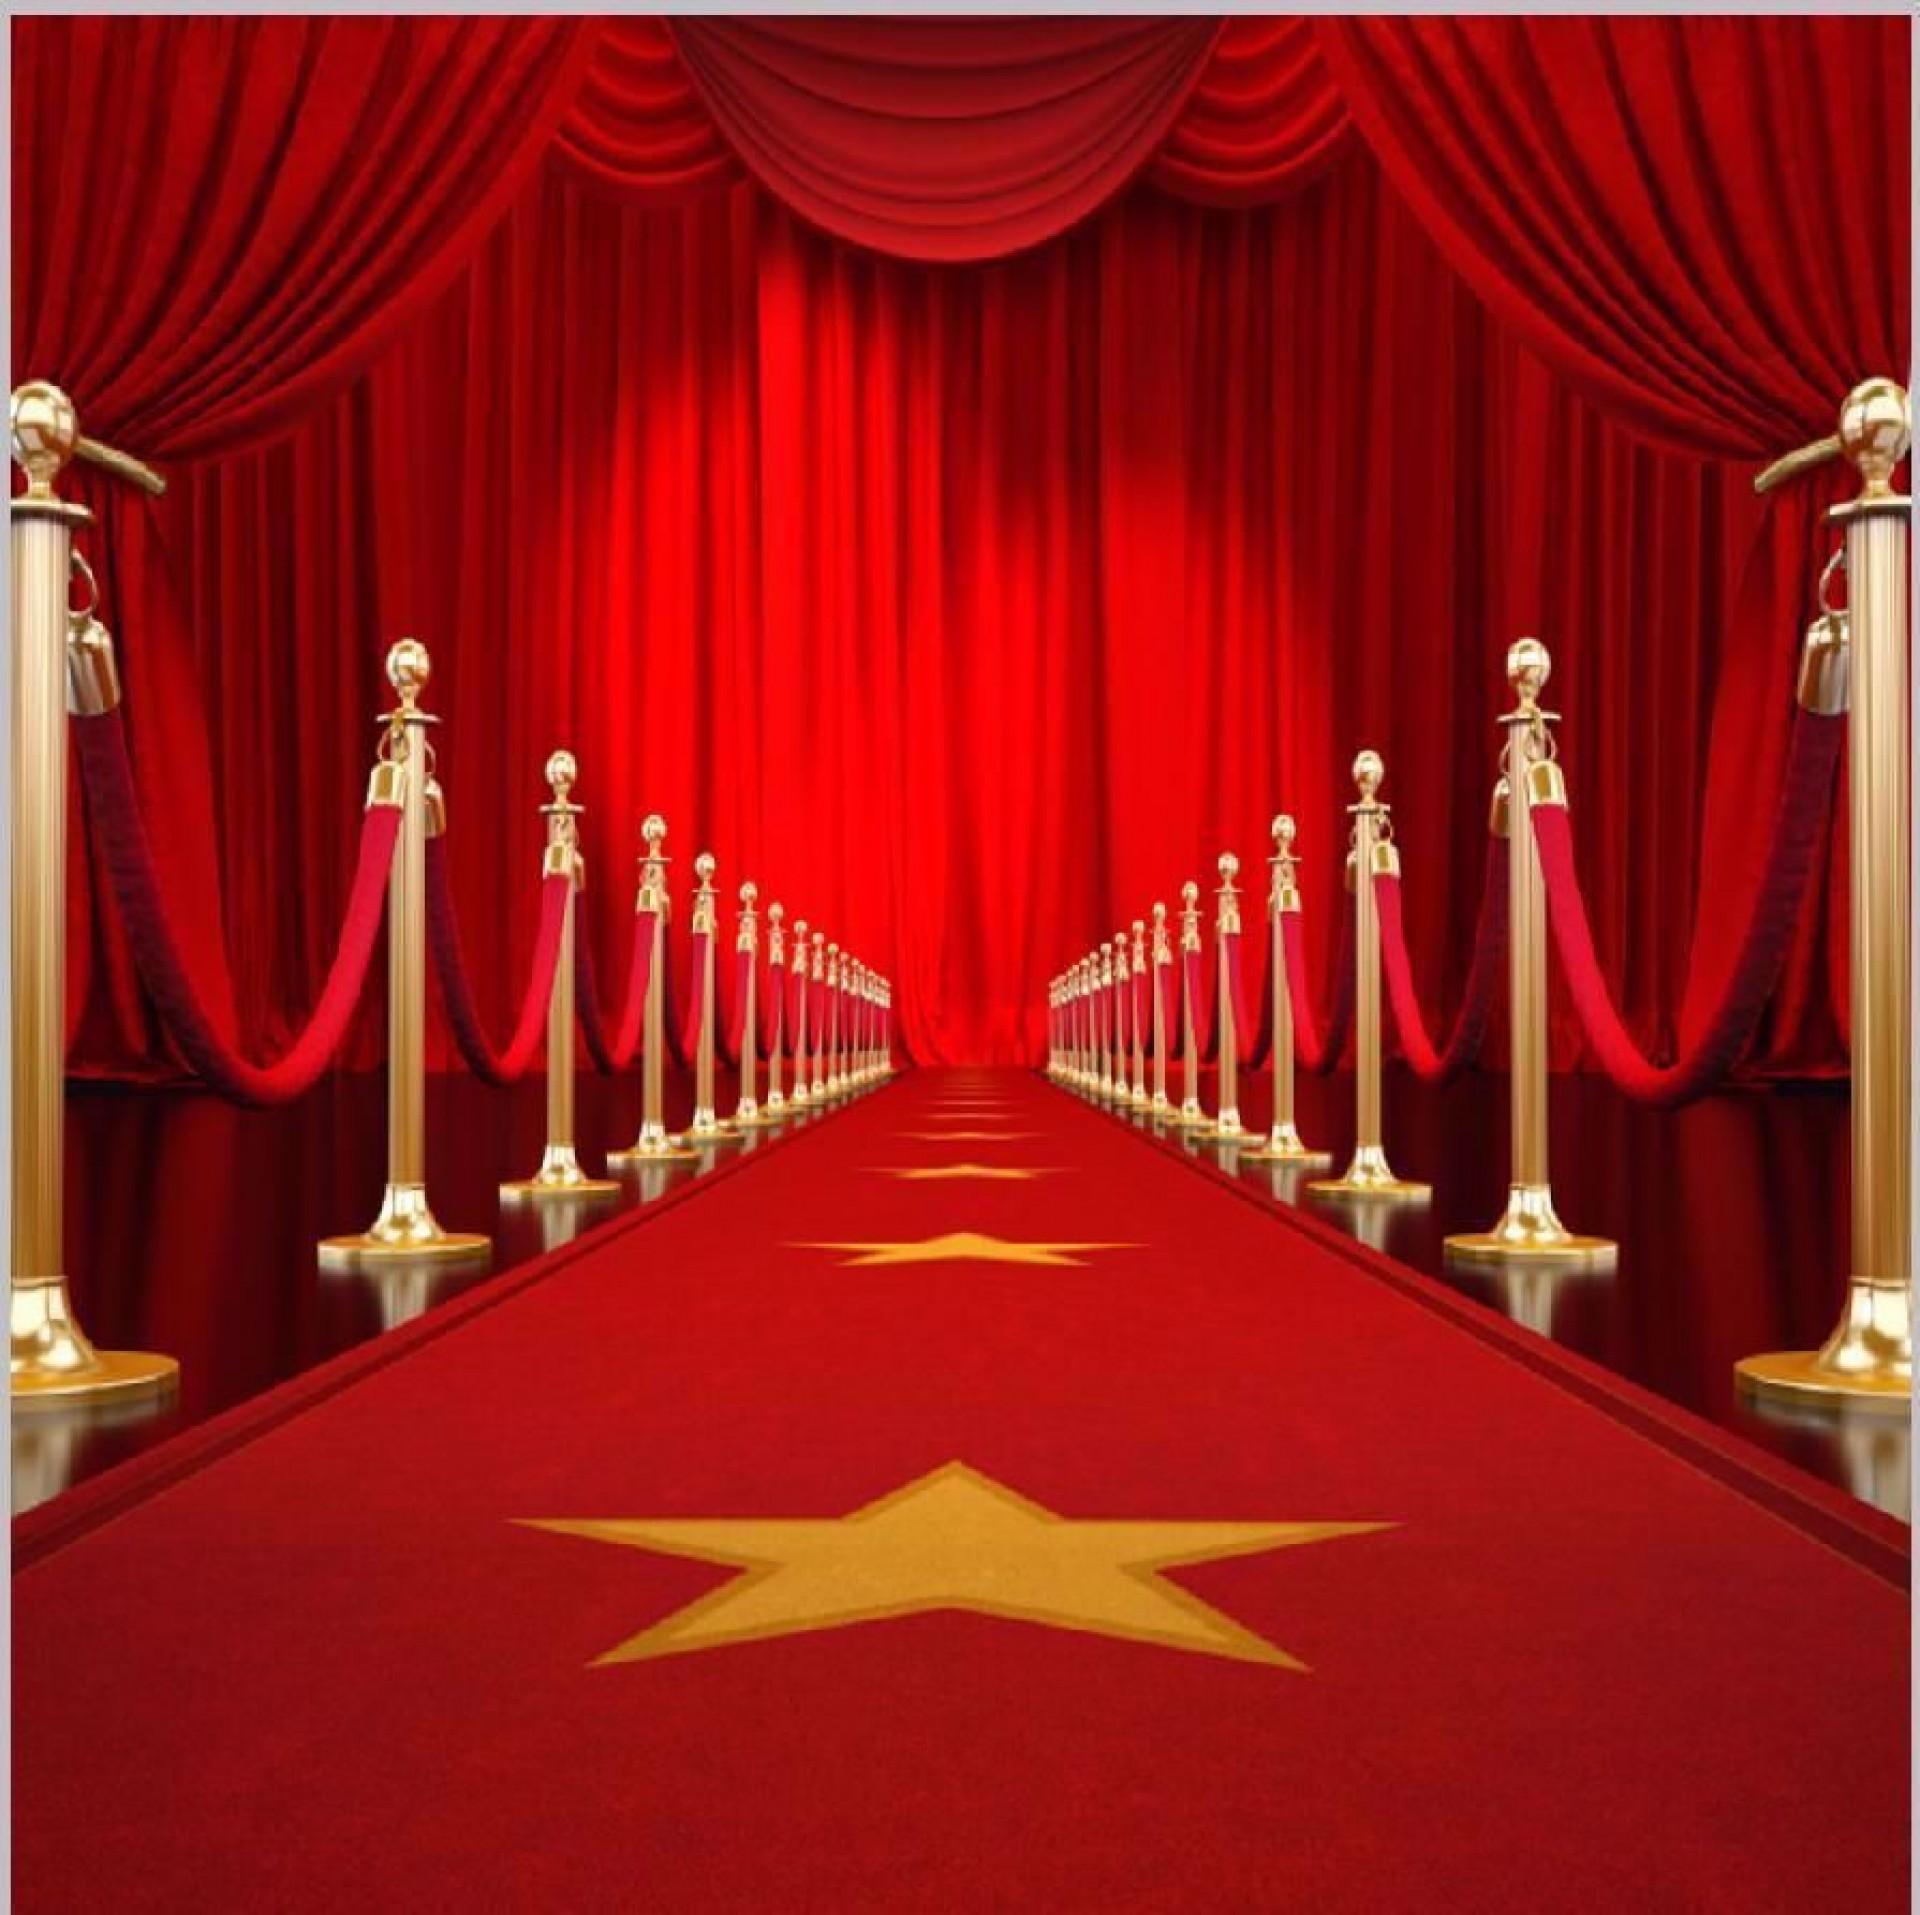 002 Simple Red Carpet Invitation Template Free Picture  Download1920